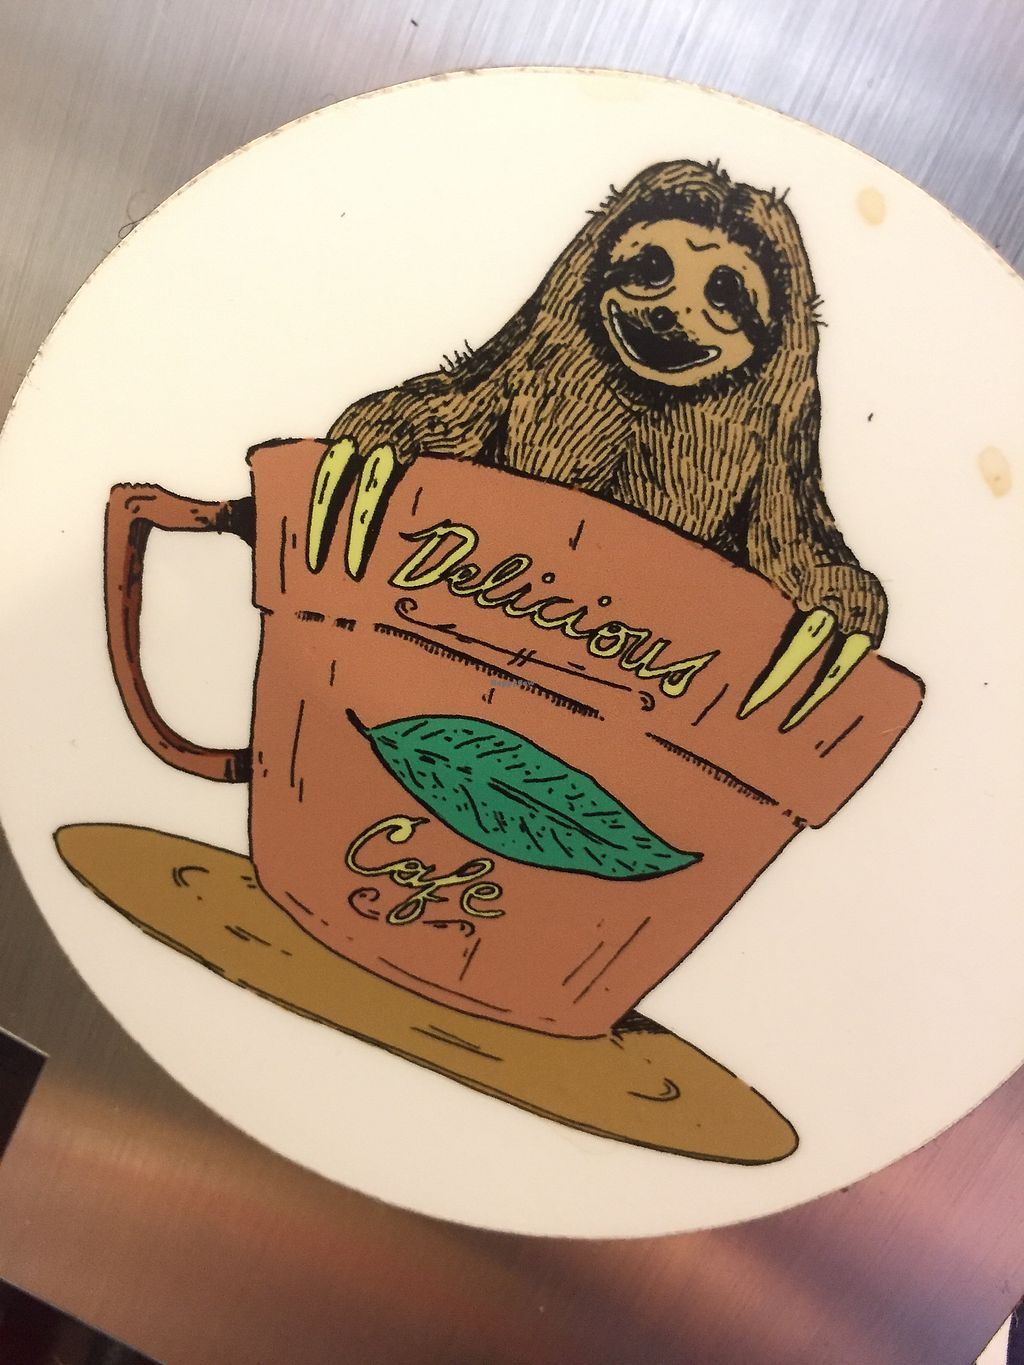 """Photo of Delicious Cafe  by <a href=""""/members/profile/happycowgirl"""">happycowgirl</a> <br/>sloth pics everywhere! it's awesome! <br/> August 4, 2017  - <a href='/contact/abuse/image/17202/288744'>Report</a>"""